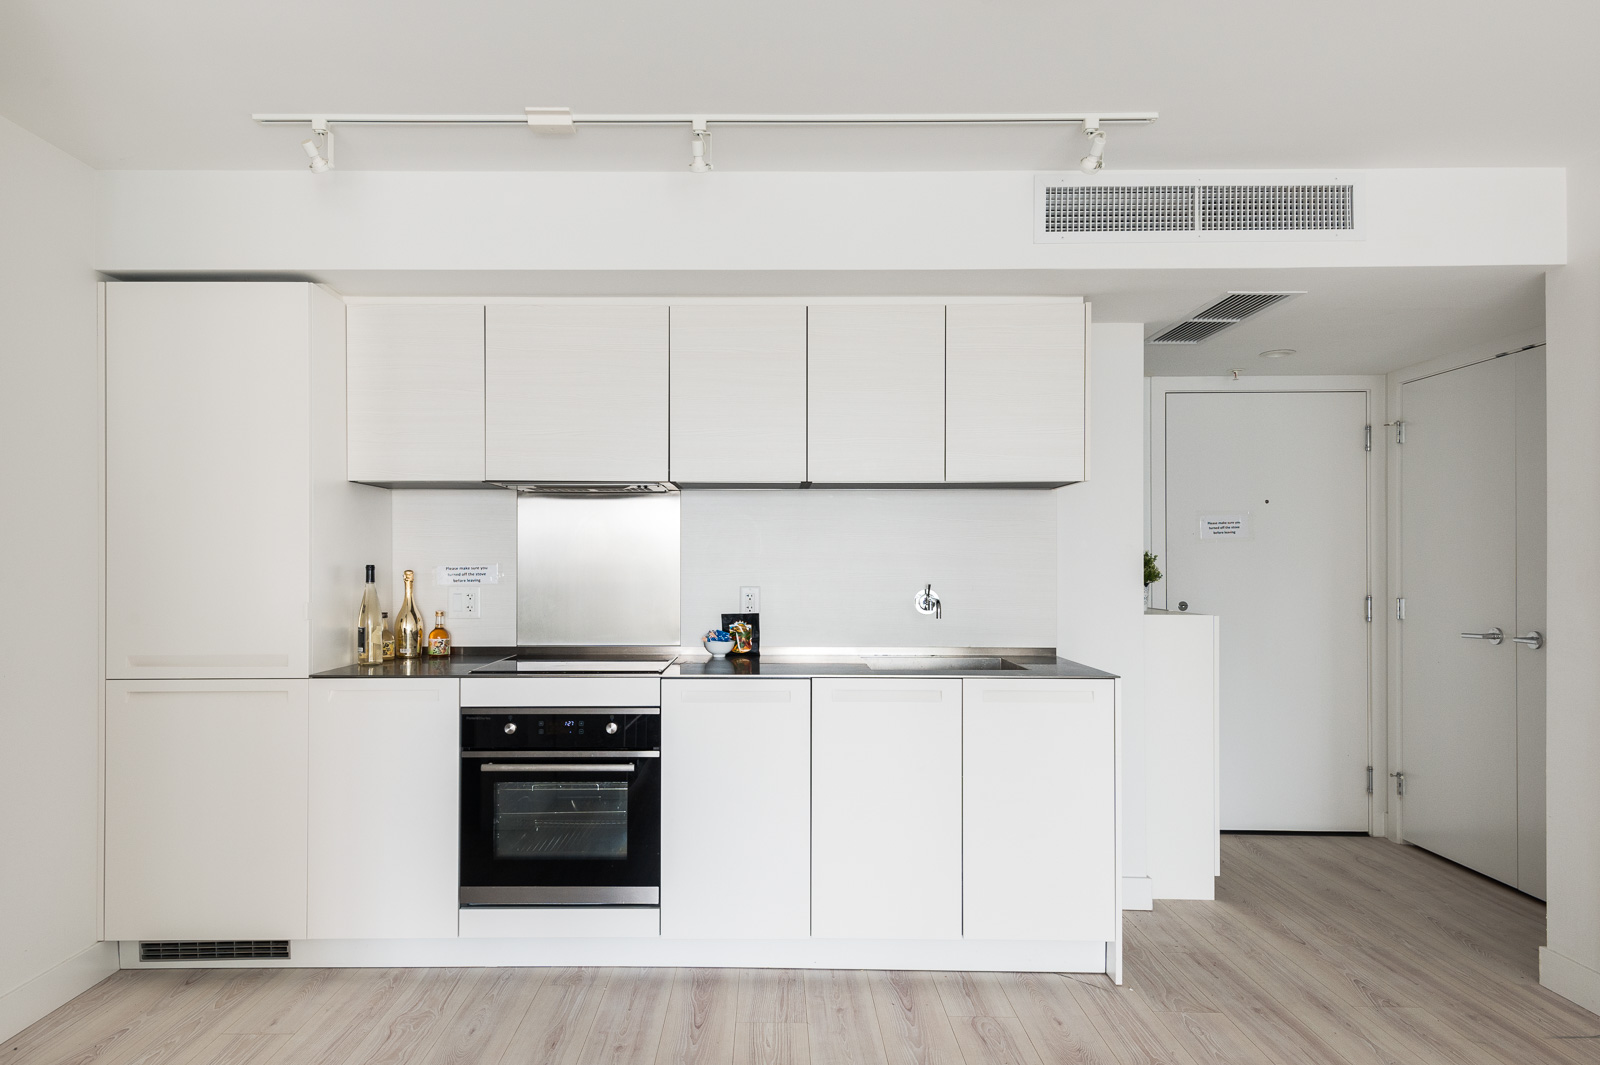 Kitchen decorated in ash hardwood and white cabinetry with built-in stove top oven in Vancouver luxury condo.